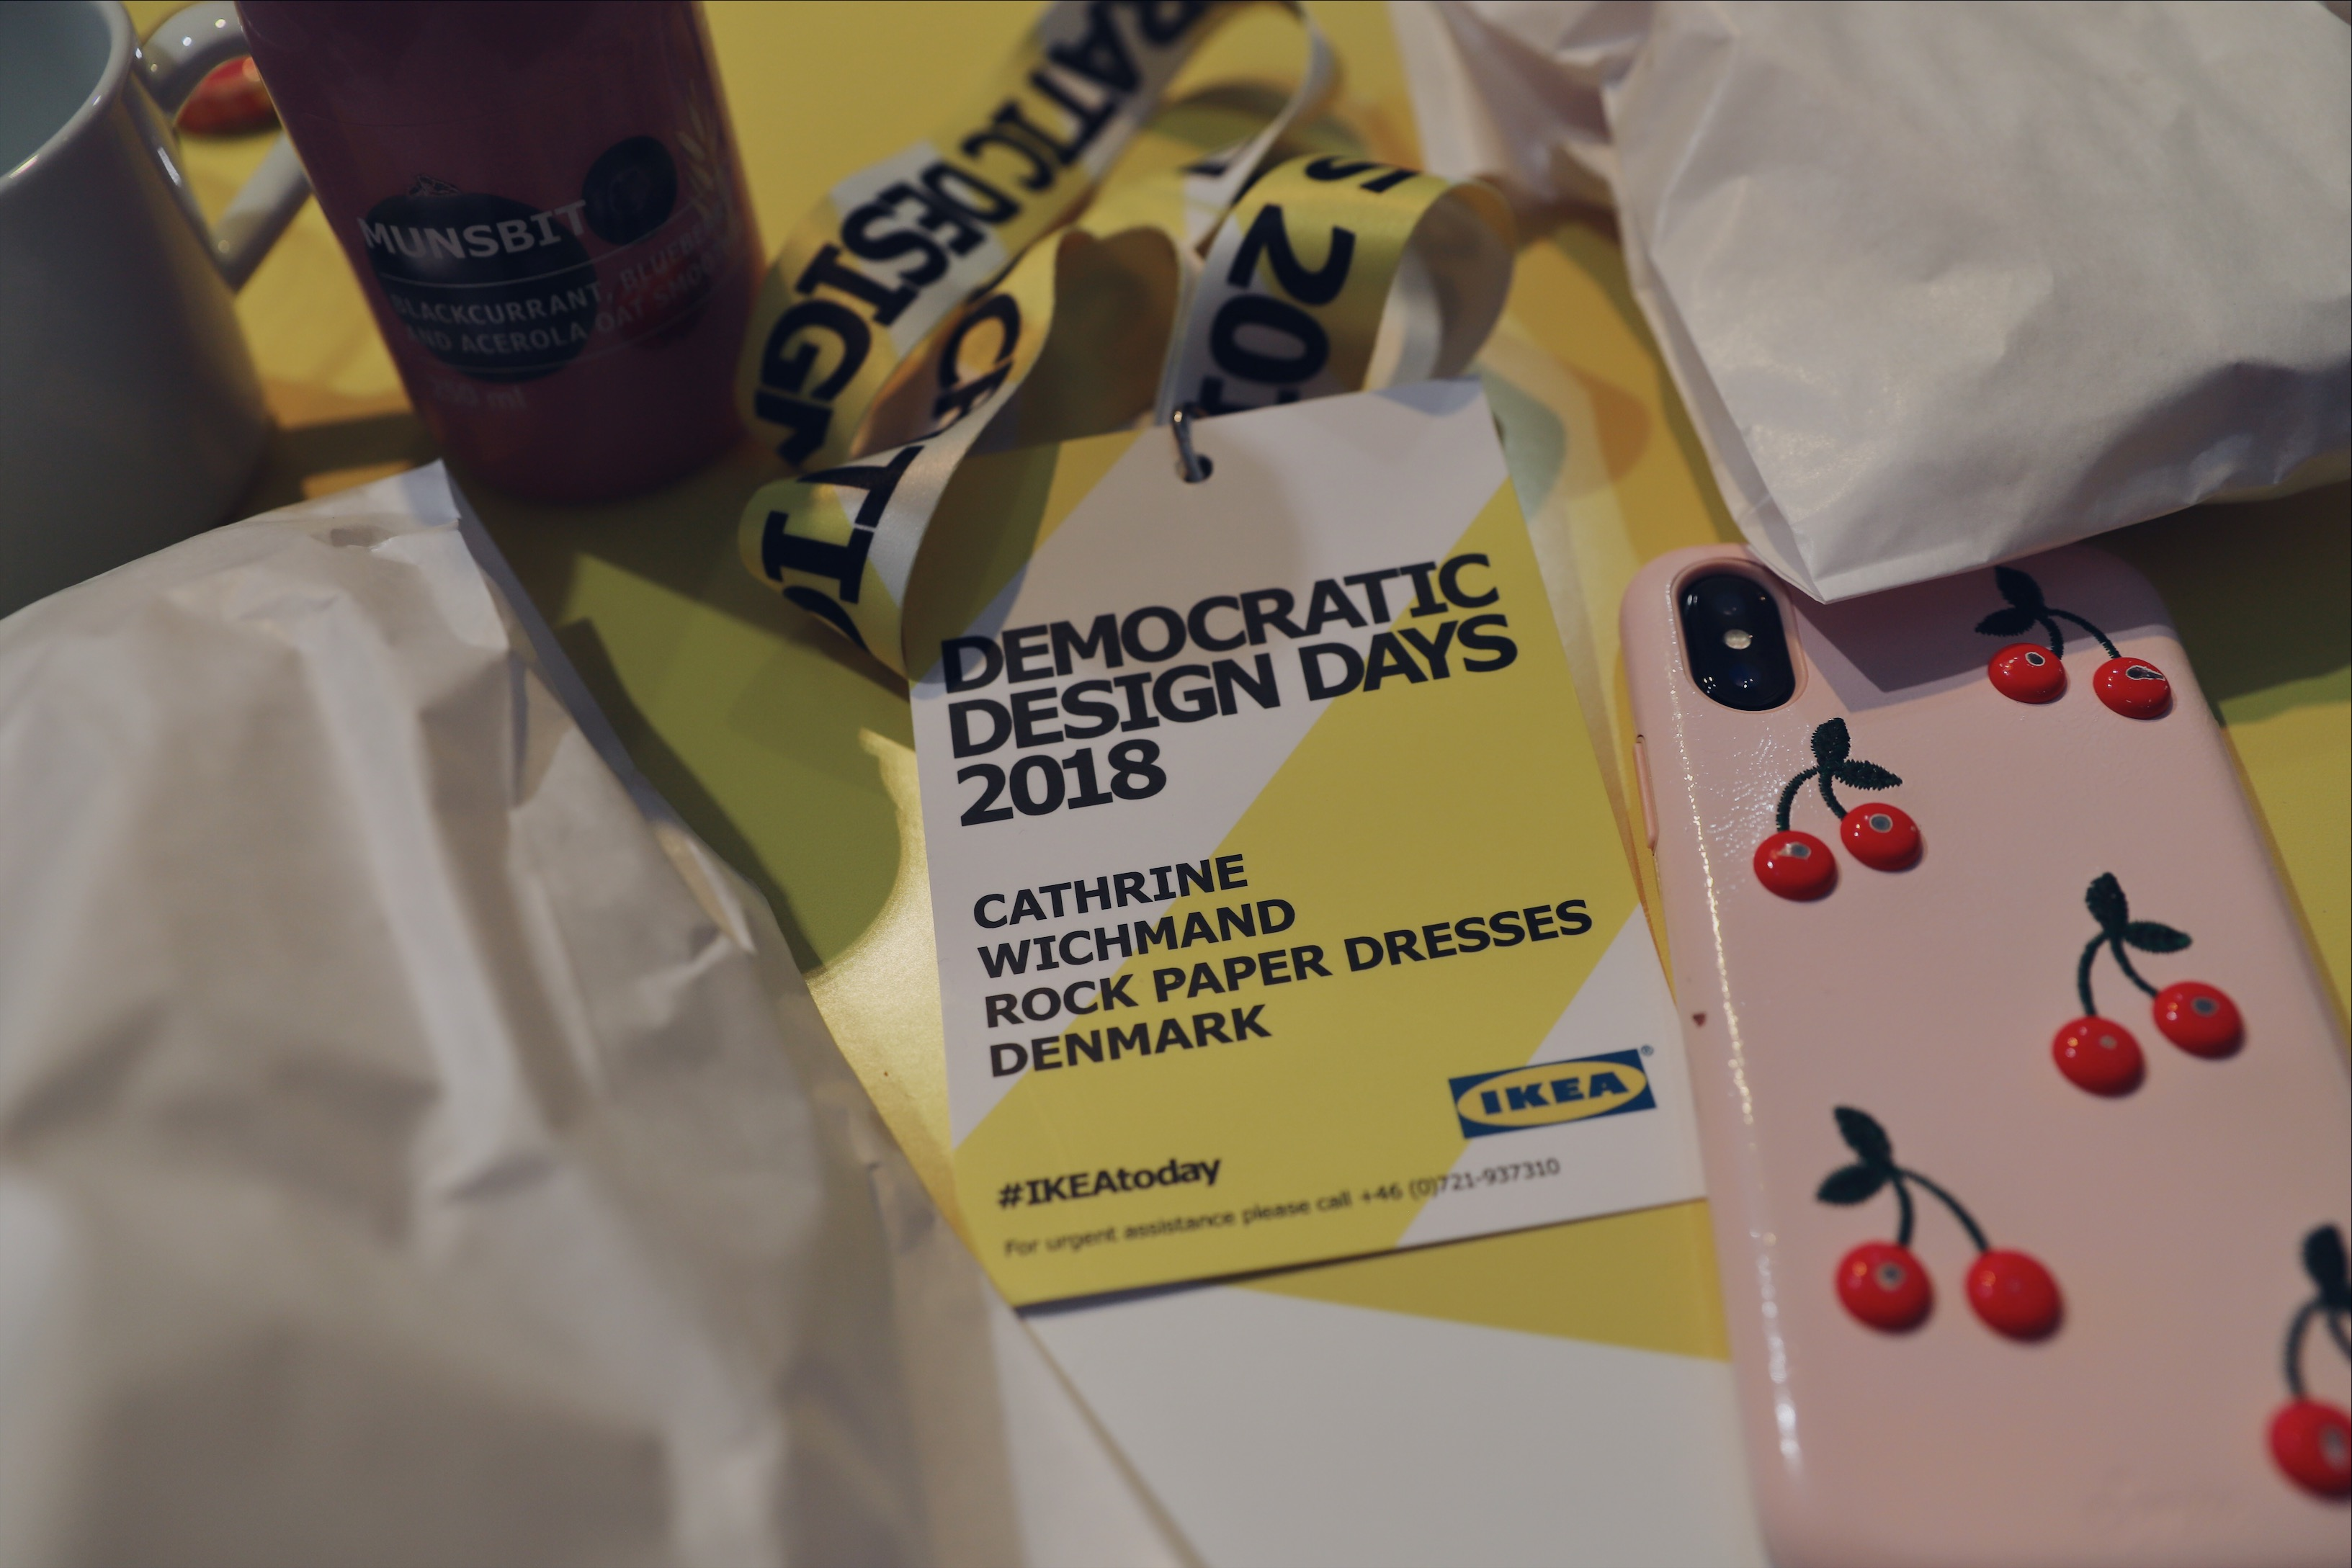 ROCKPAPERDRESSES, Cathrine Widunok Wichmand, IKEA DEMOCRATIC DESIGN DAYS 2018